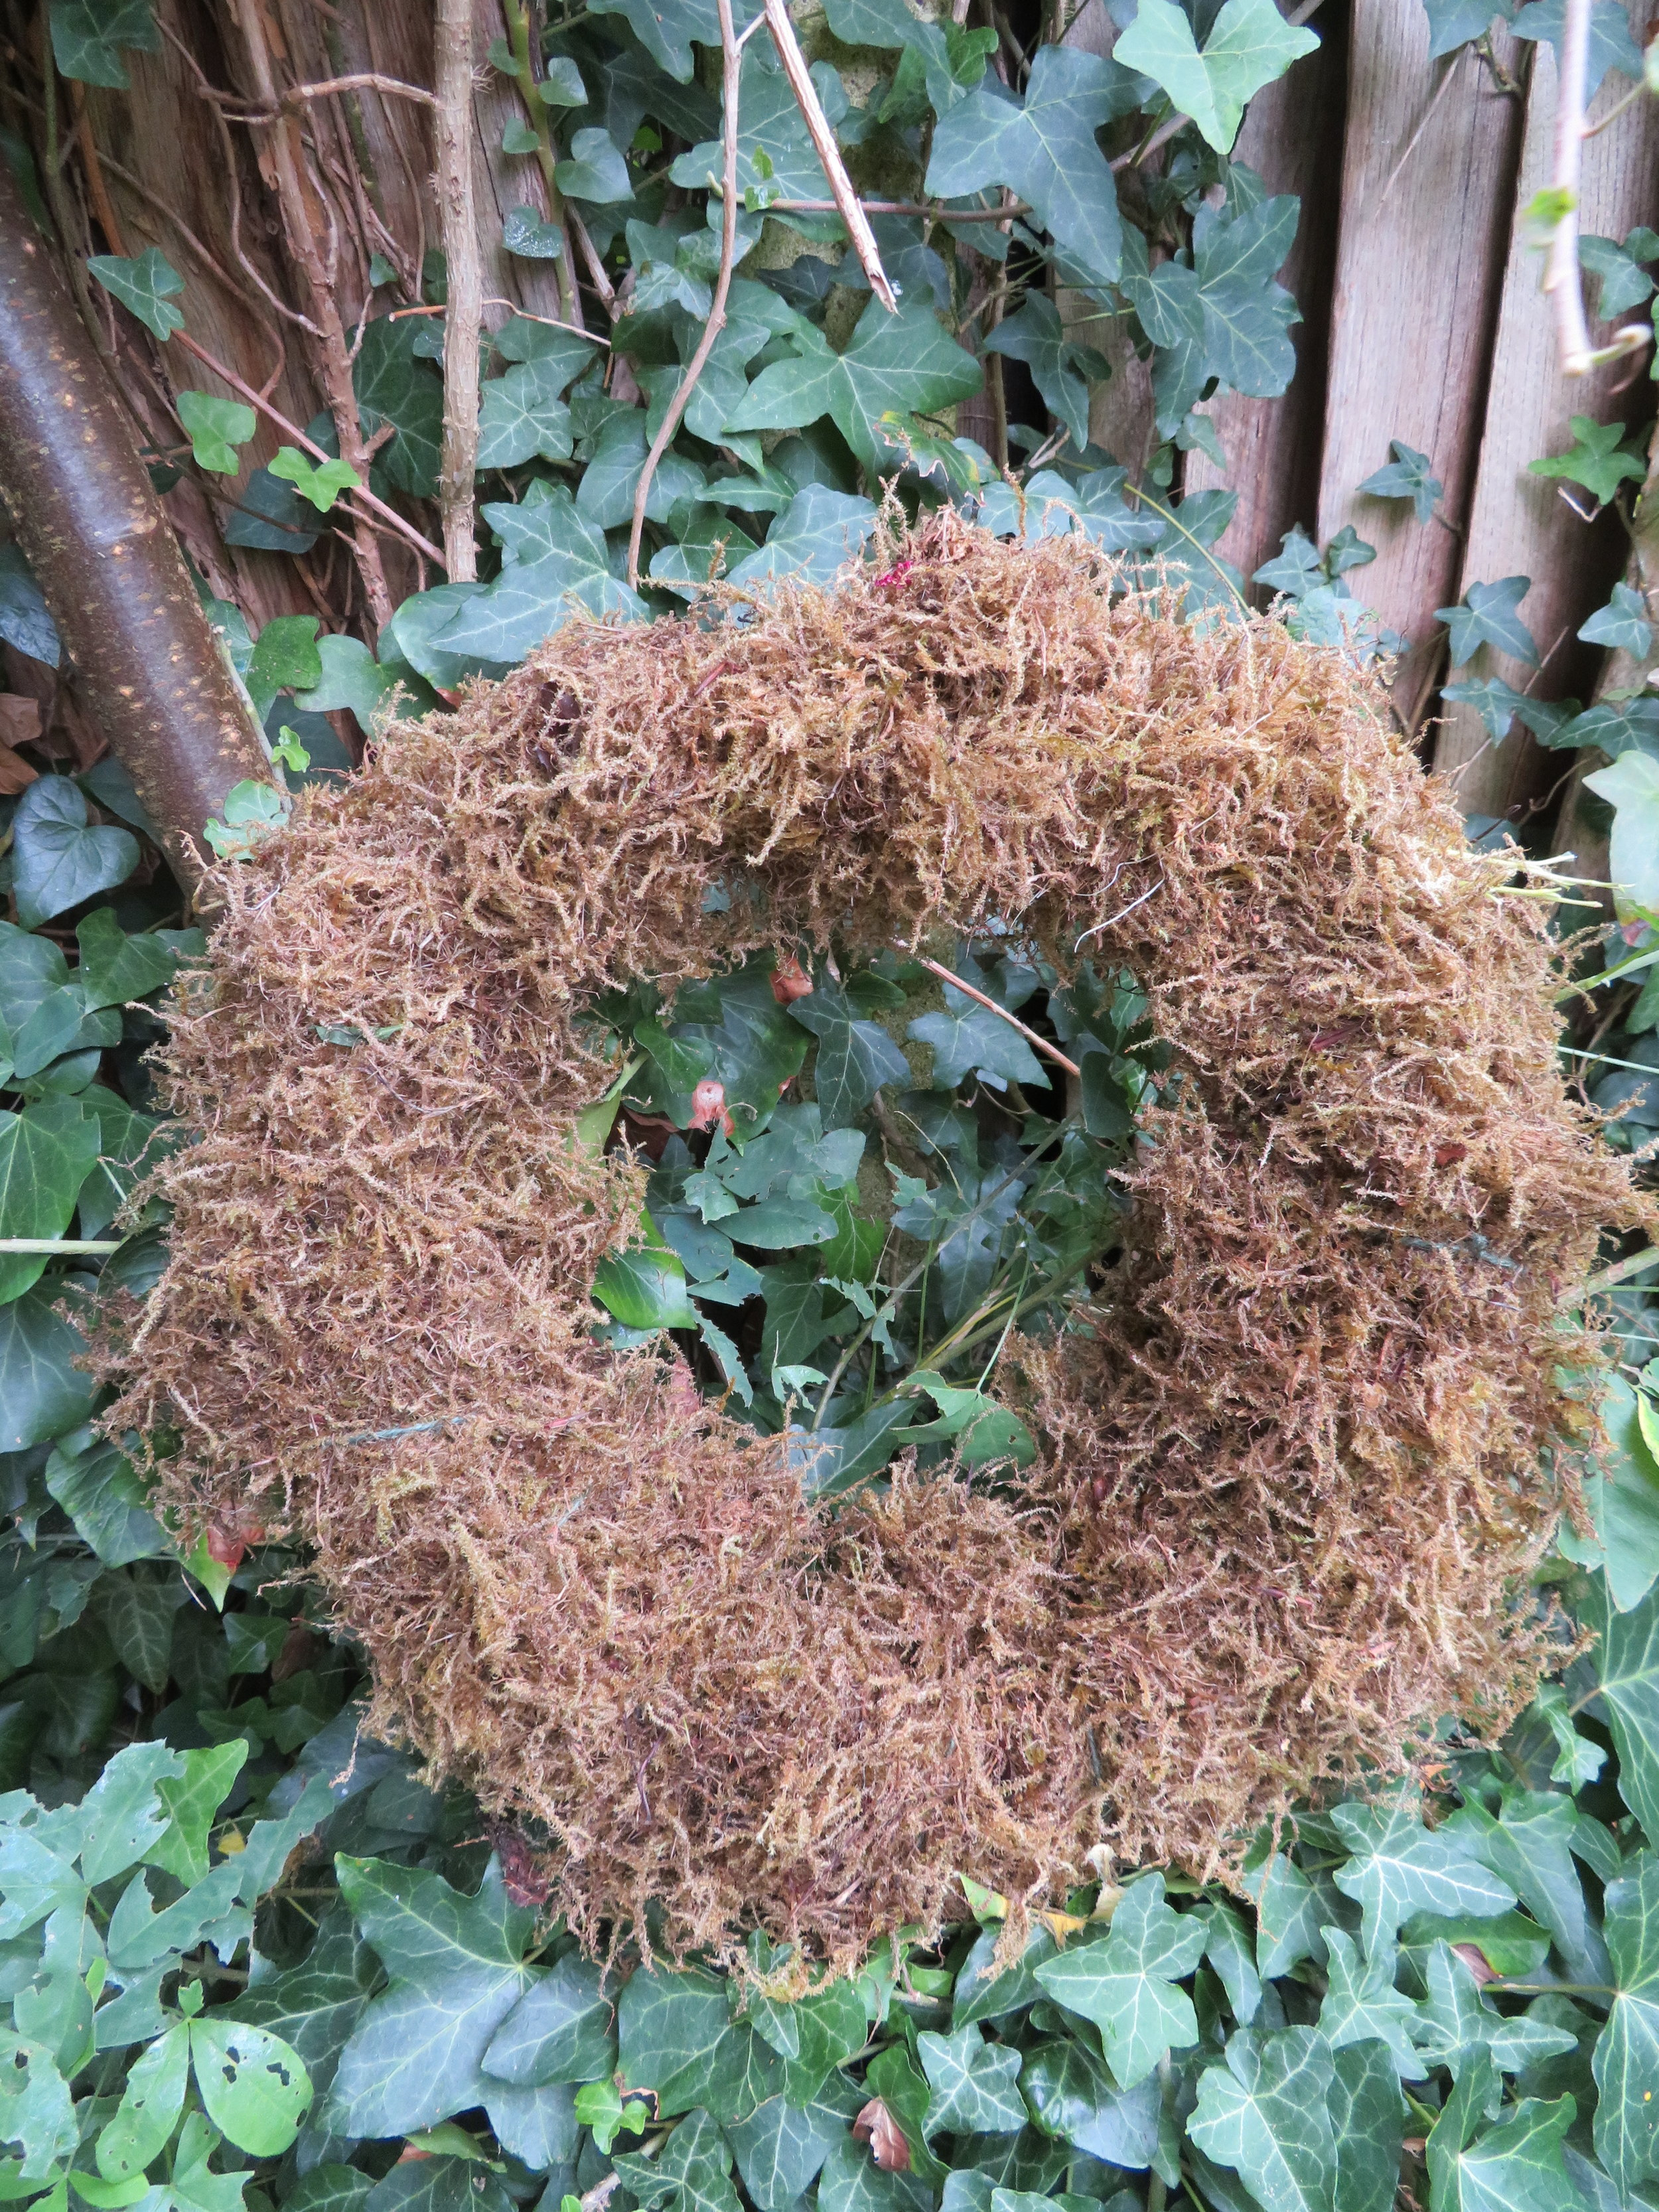 Moss secured around the willow frame with twine